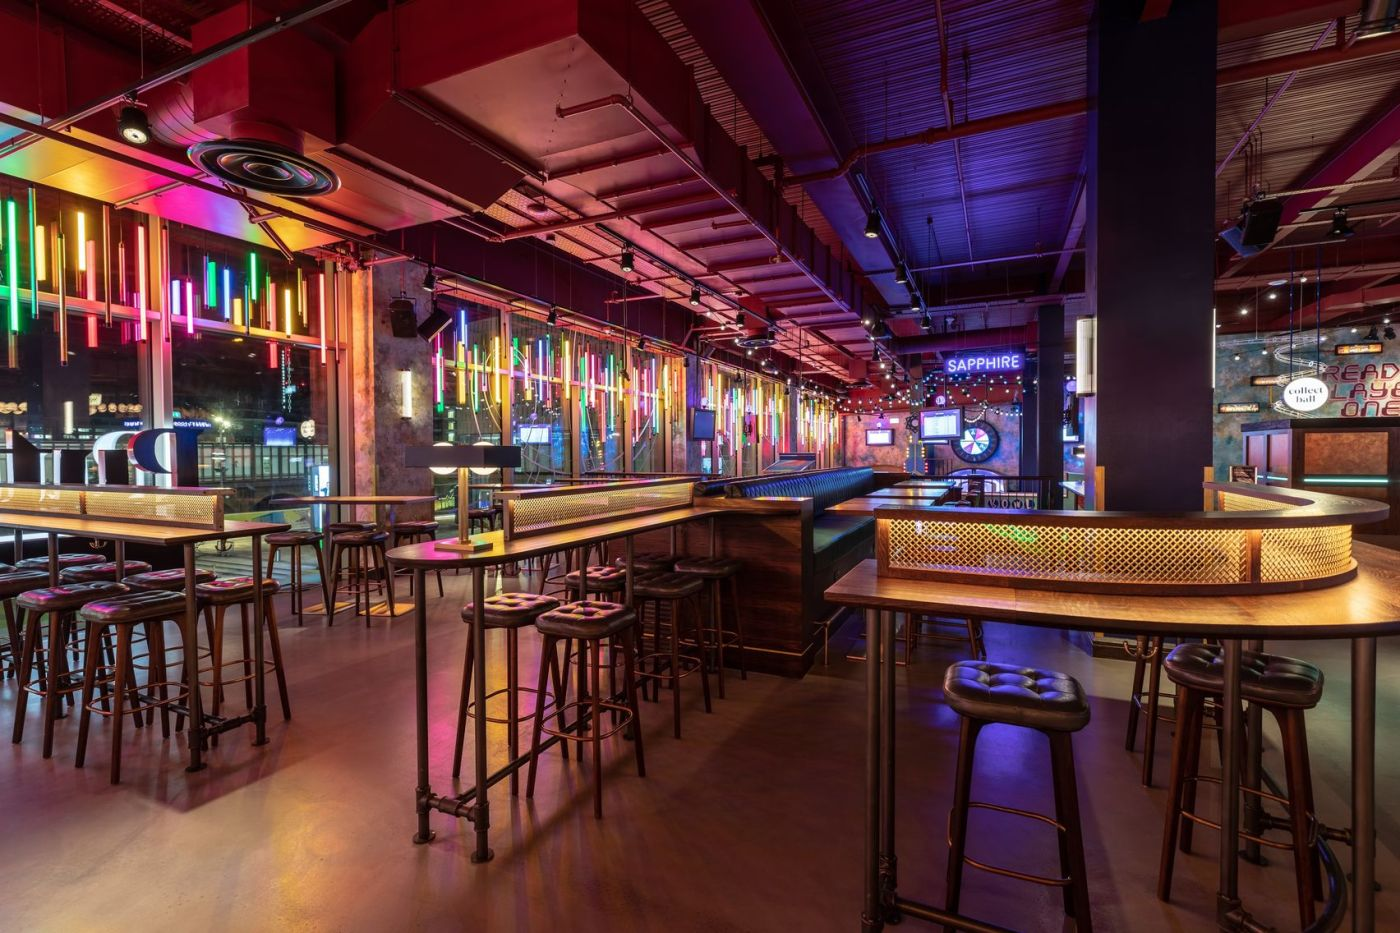 A modern, contemporary bar puttshack is also a mini golf course. You can see bar stools and tables and the glass wall on the left hand side is lit up with multi-coloured hanging lights.